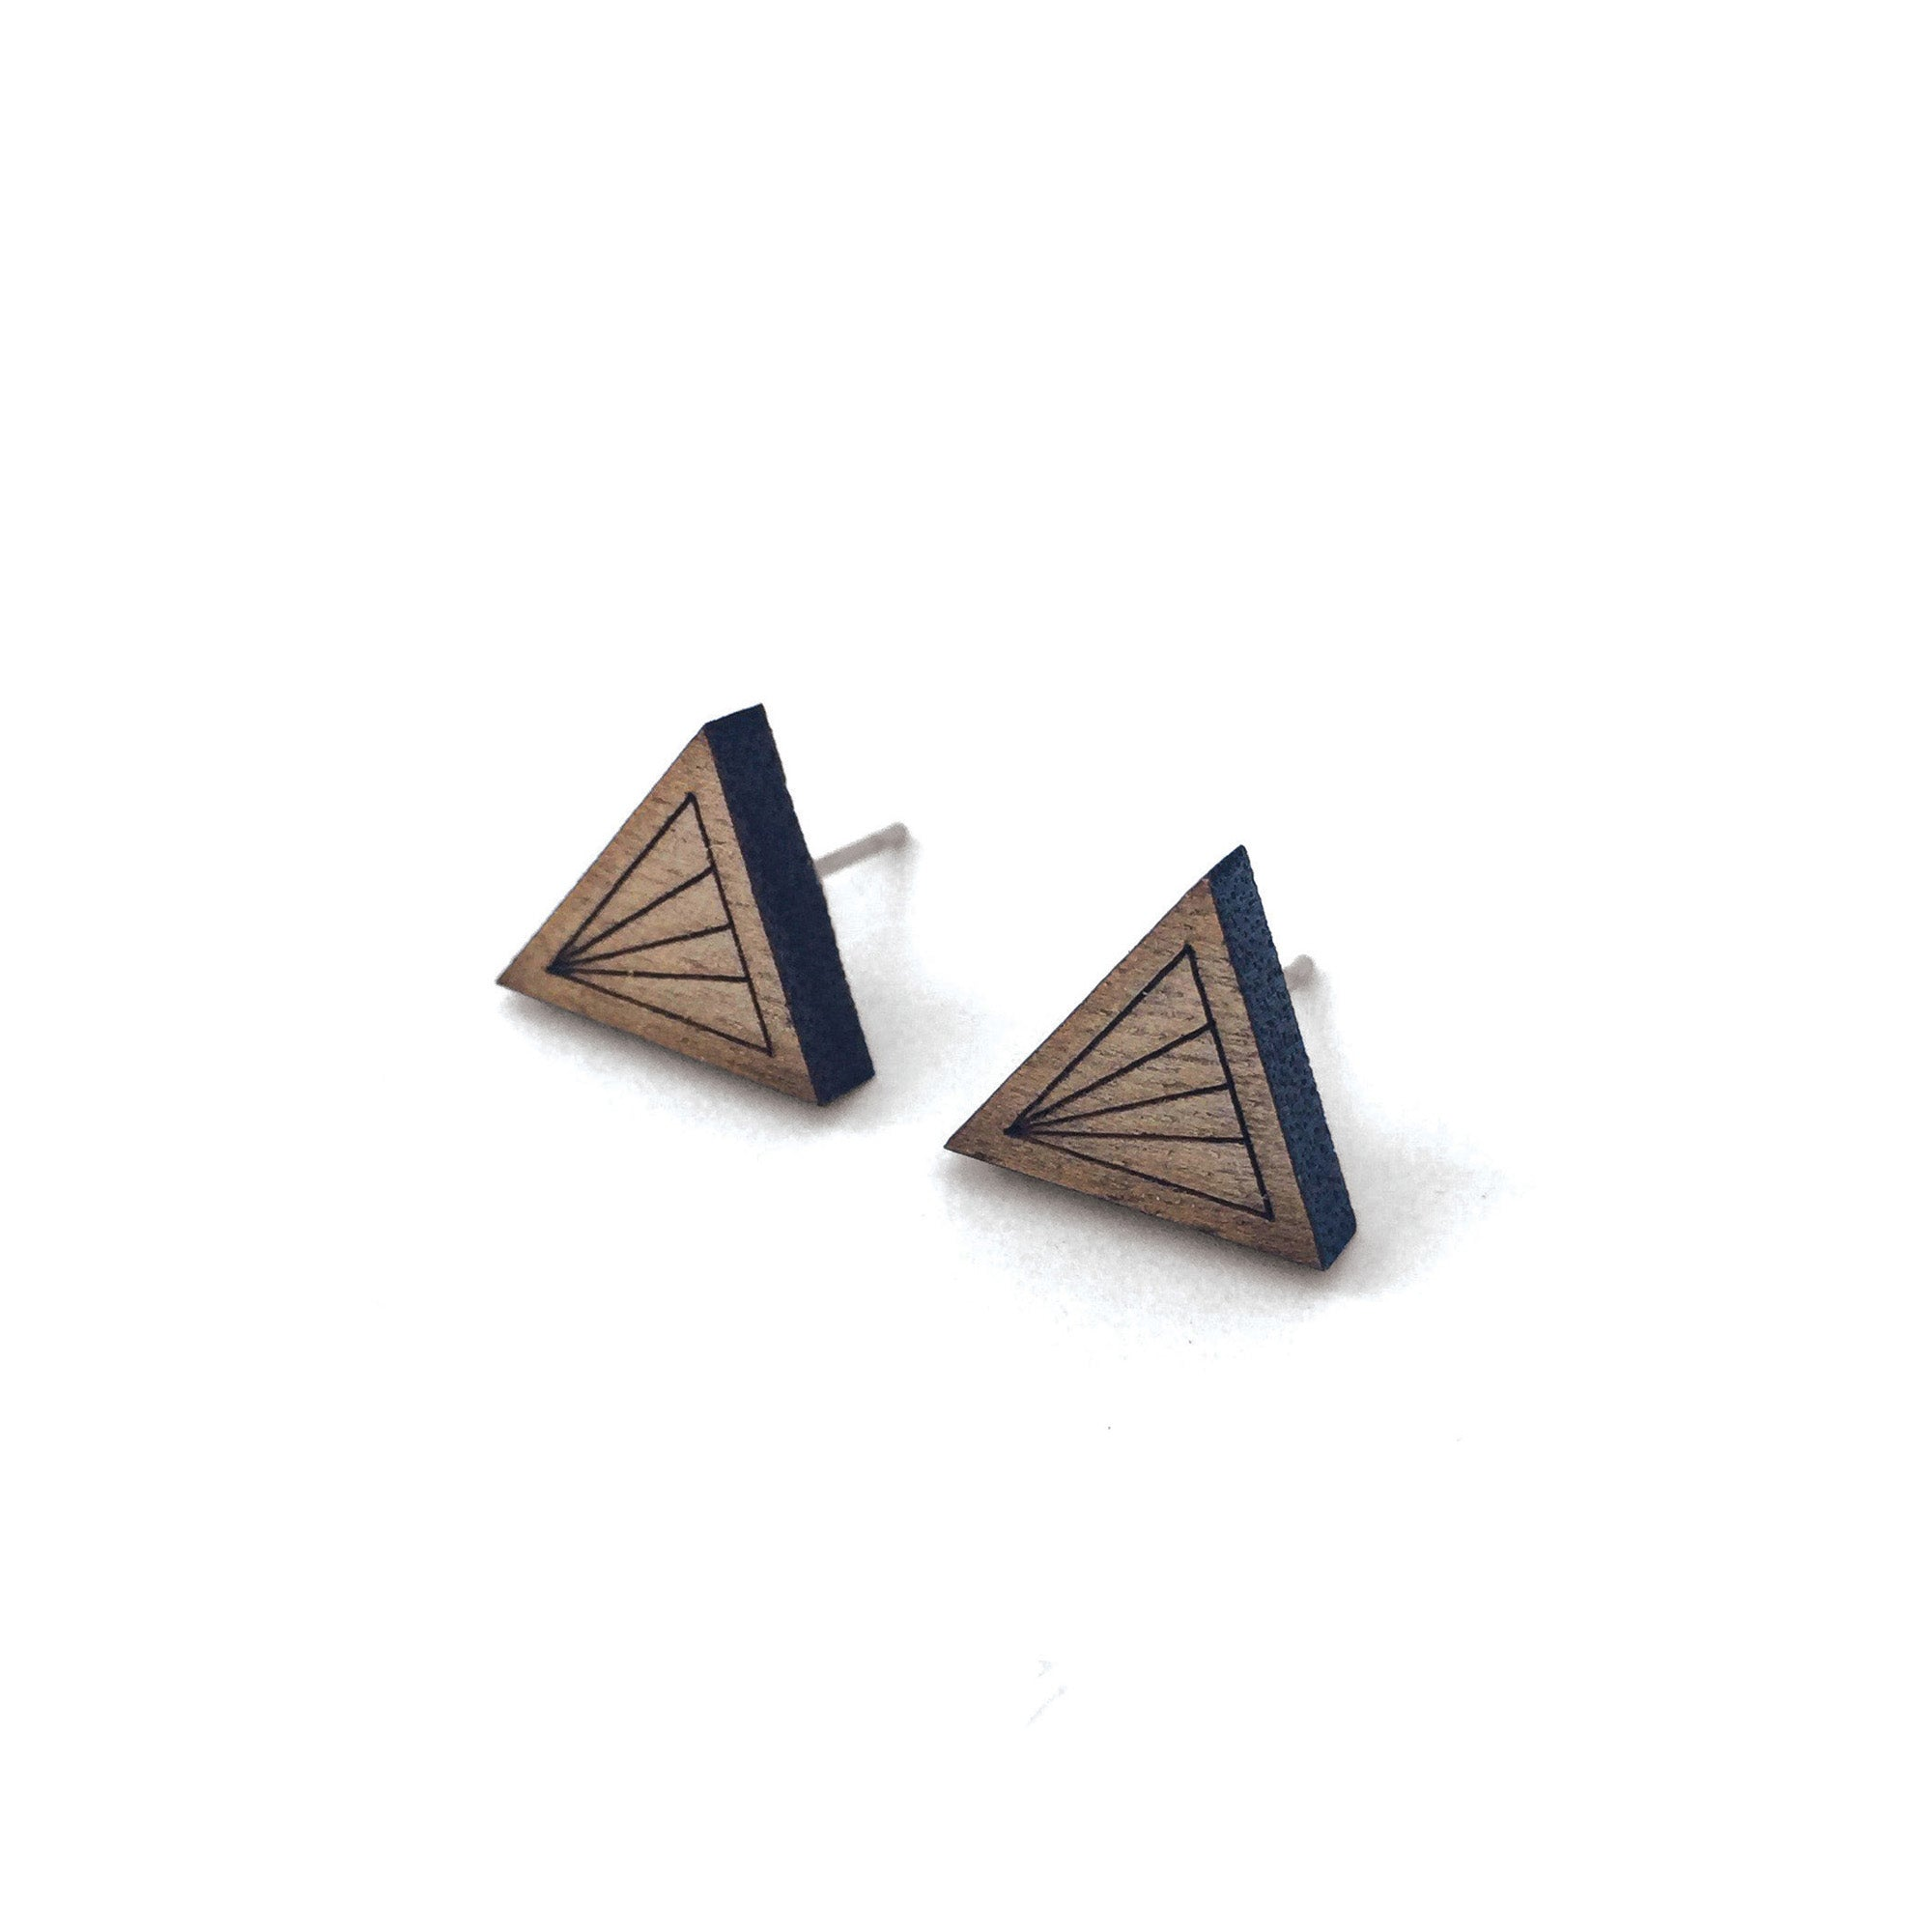 Geometric Walnut Earrings - Triangle